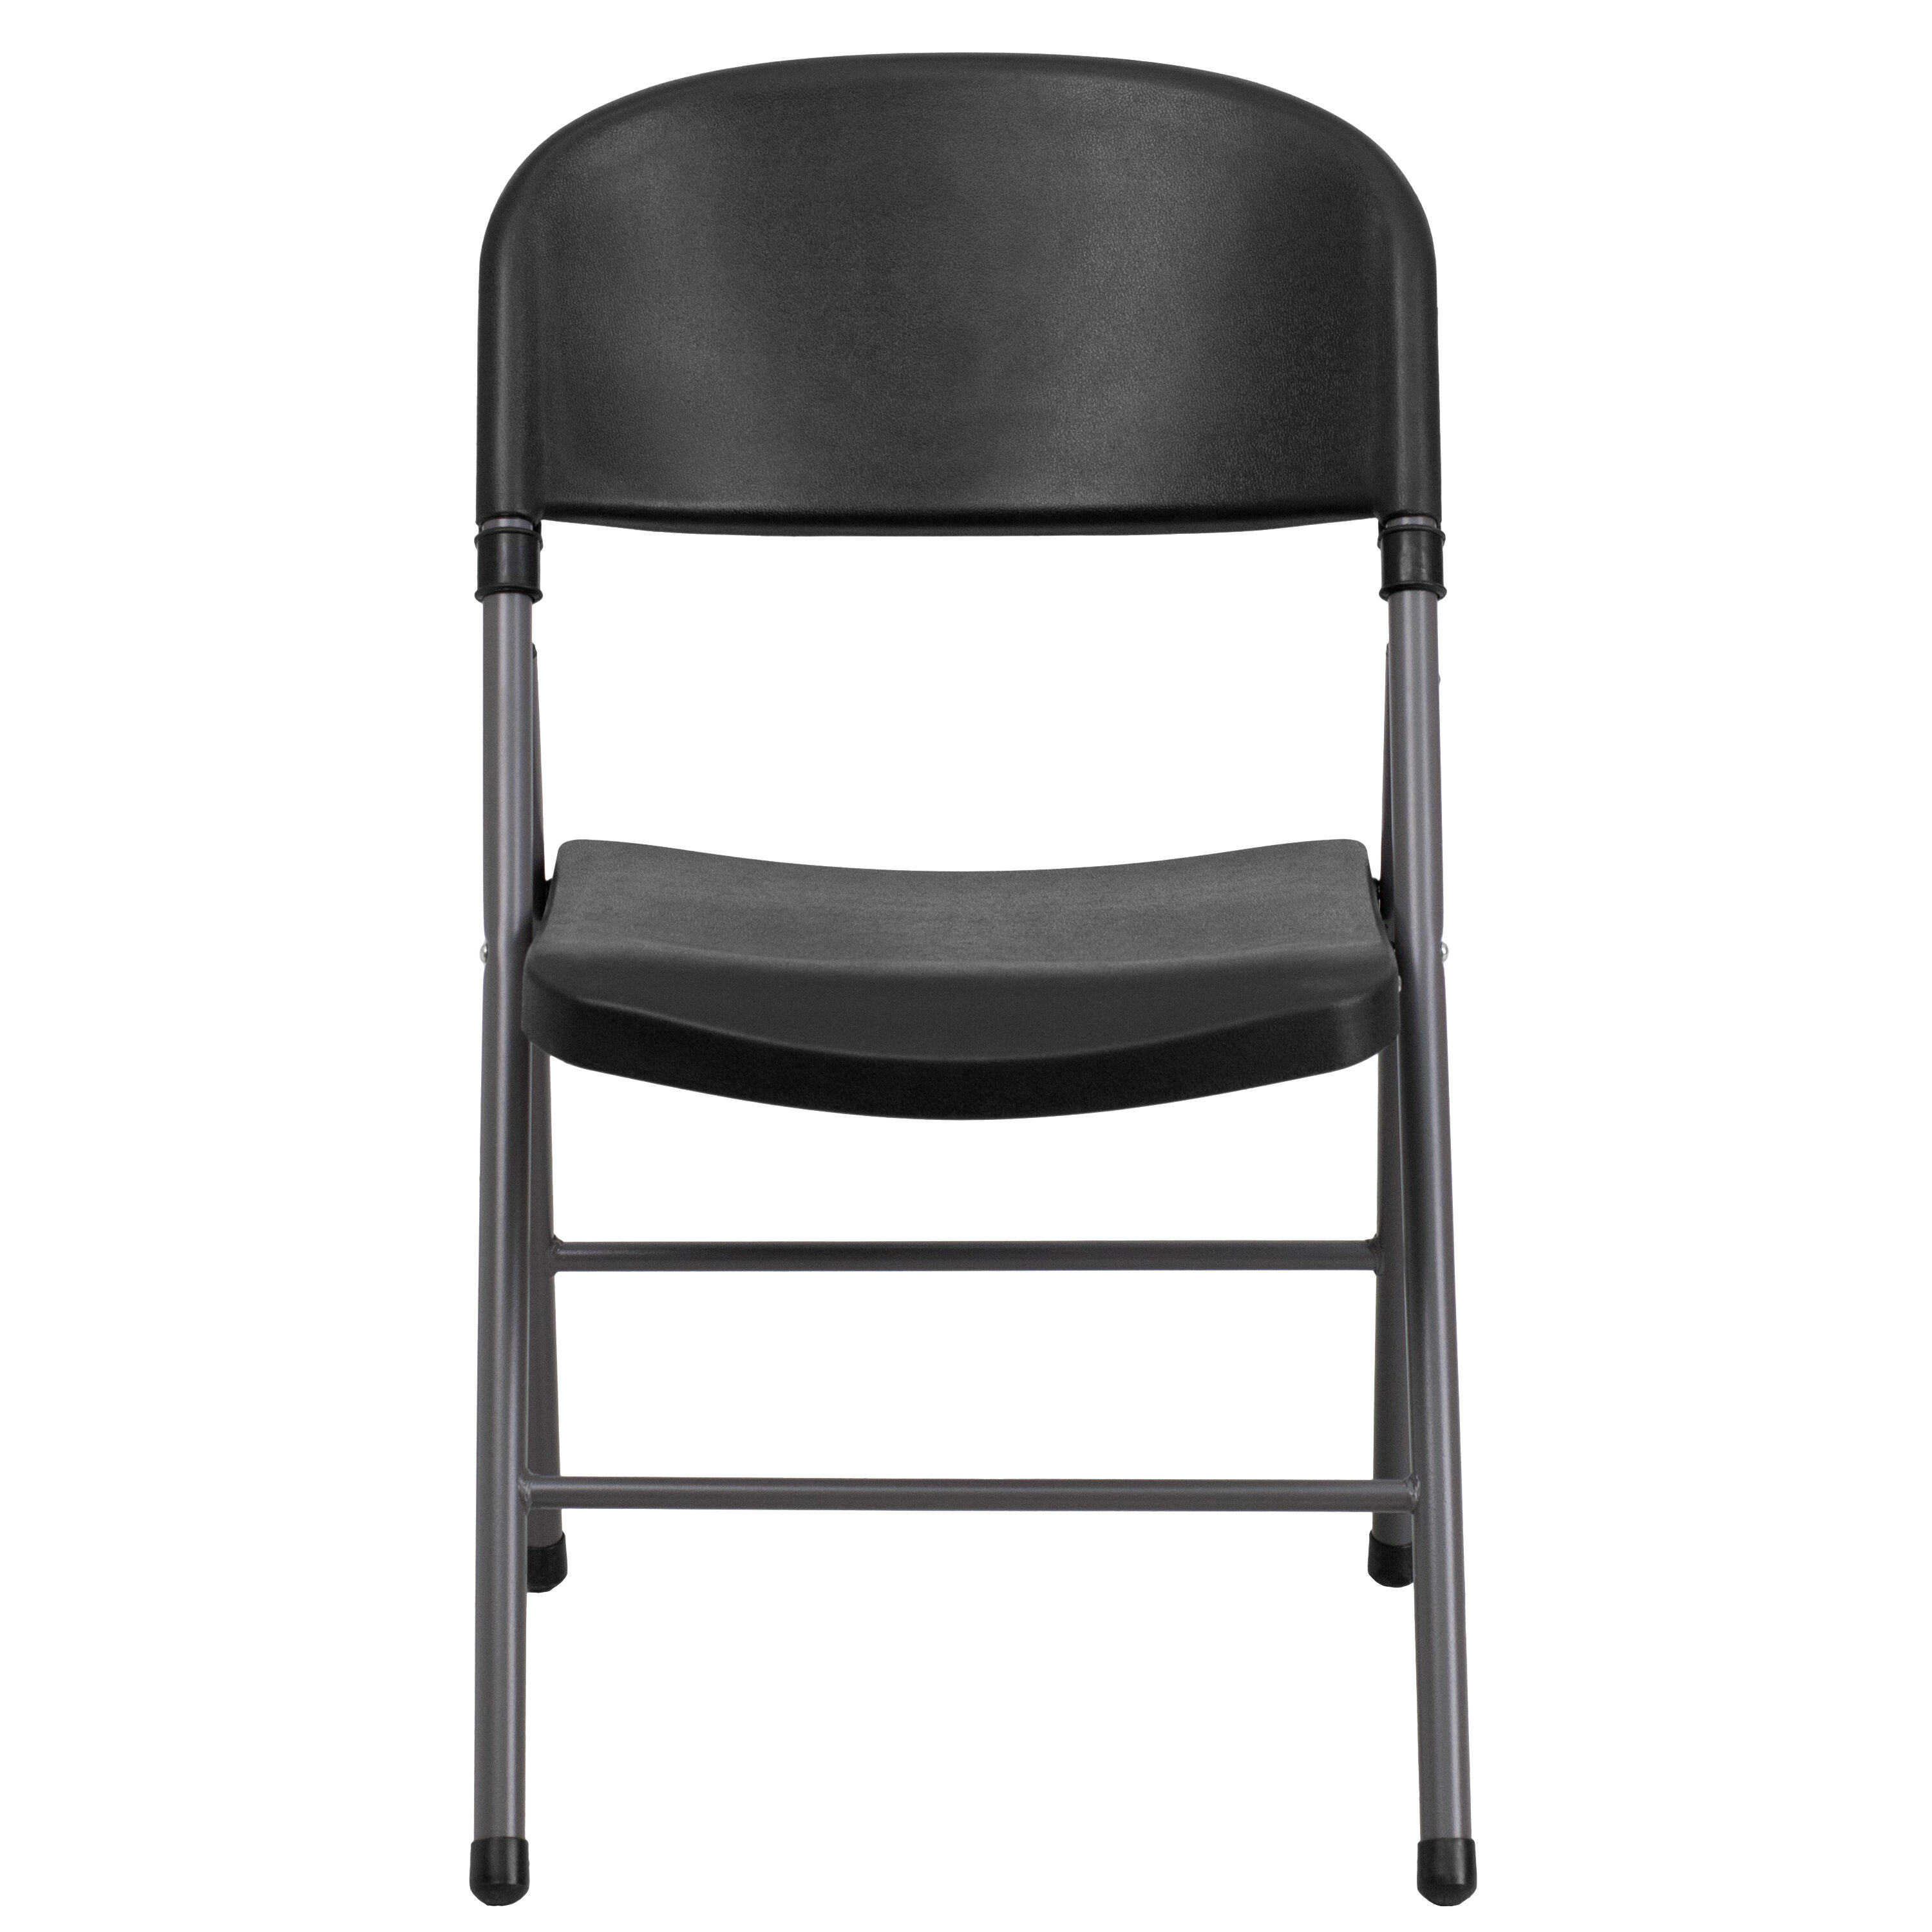 folding chair dolly 50 capacity toddler rocking chairs black plastic dad ycd gg